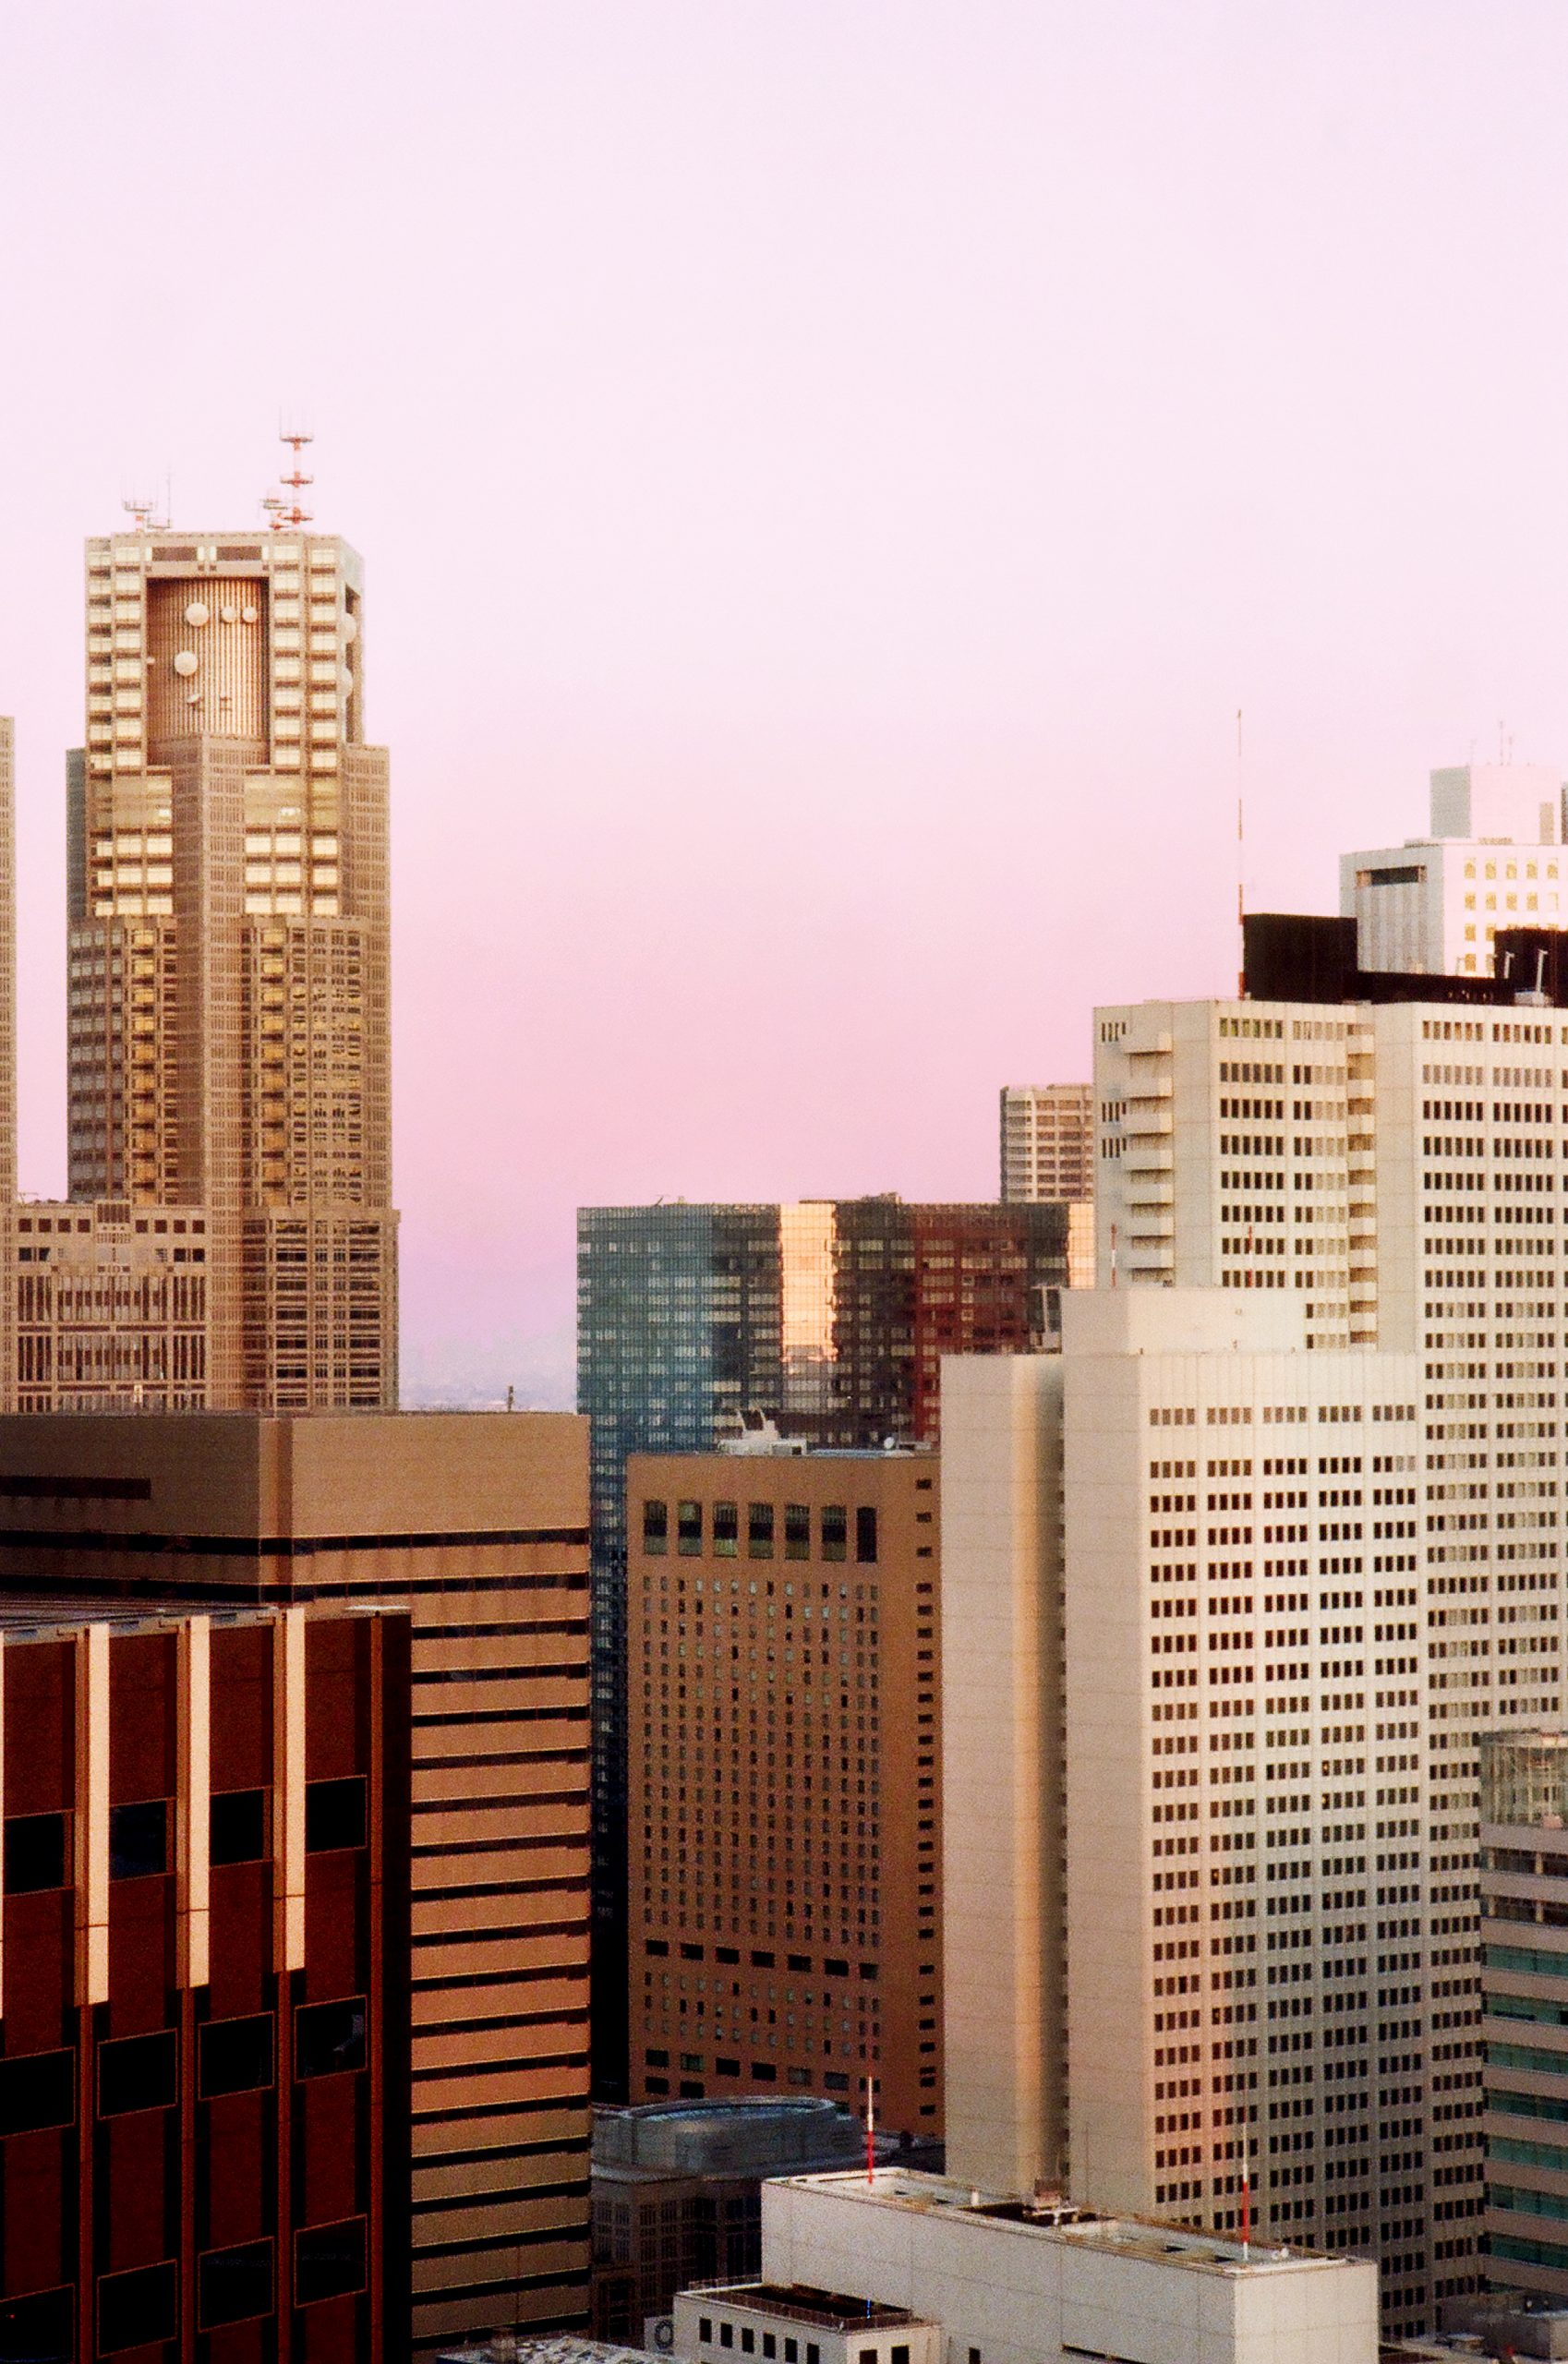 Color travel, architecture photography by Pia Riverola, Tokyo skyline.